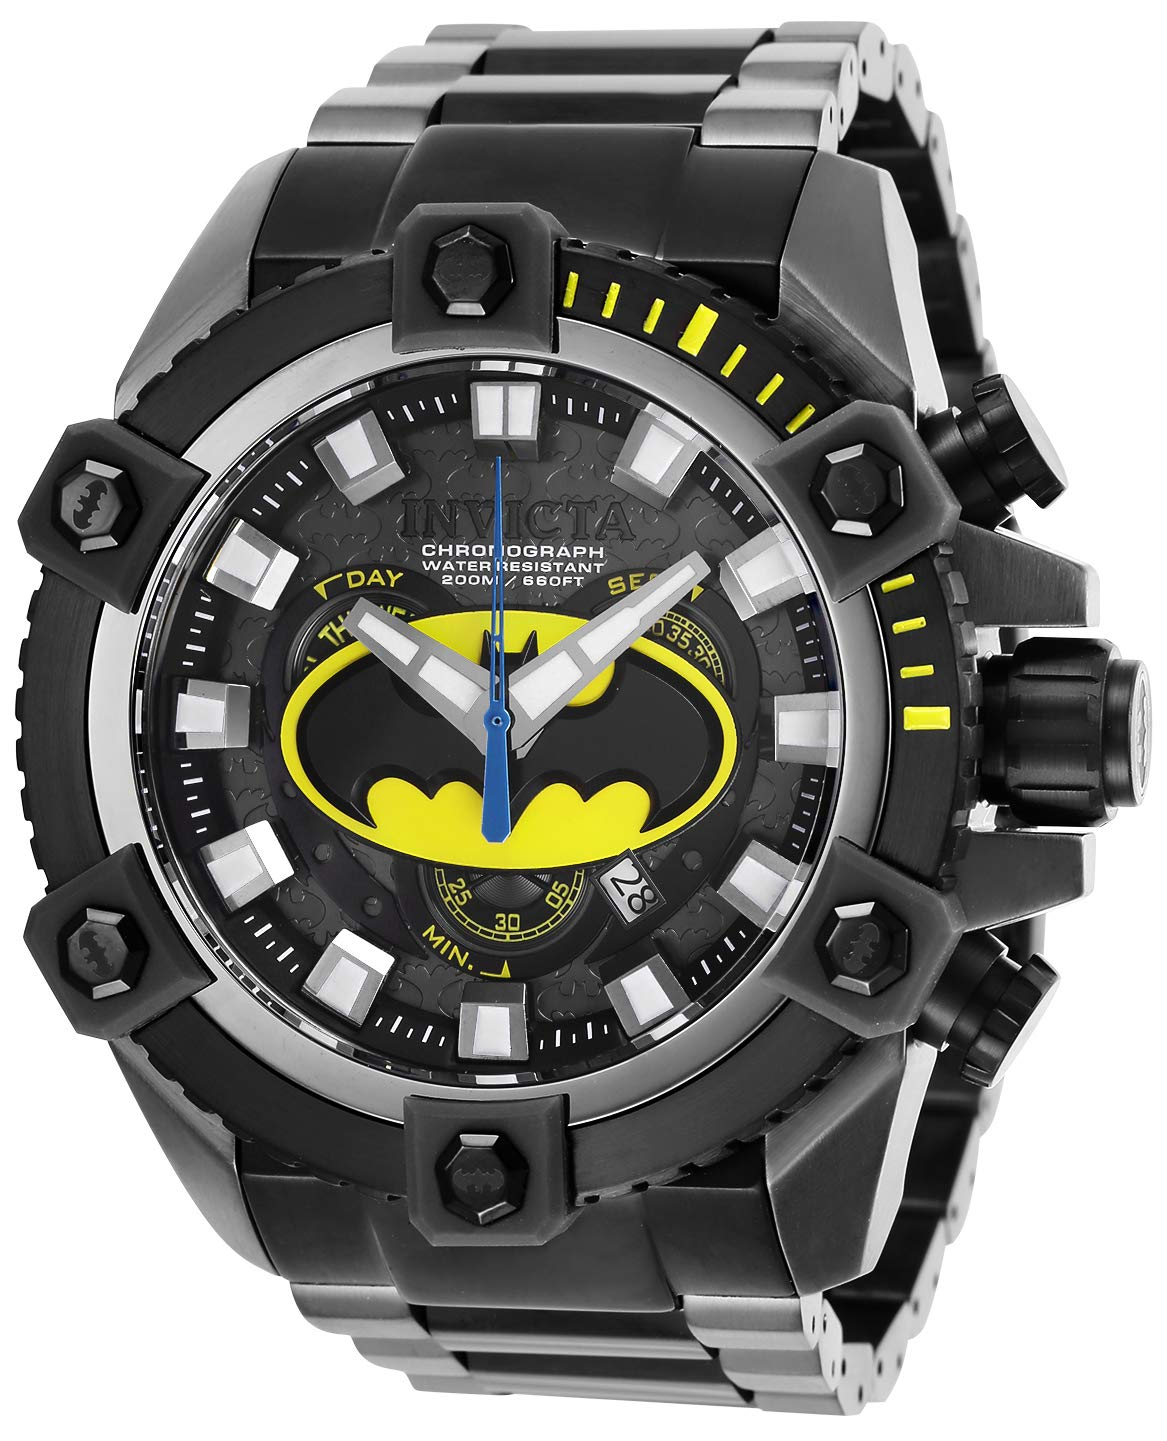 ویکالا · خرید  اصل اورجینال · خرید از آمازون · Invicta Men's DC Comics Quartz Watch with Stainless Steel Strap, Black, 31 (Model: 26912) wekala · ویکالا